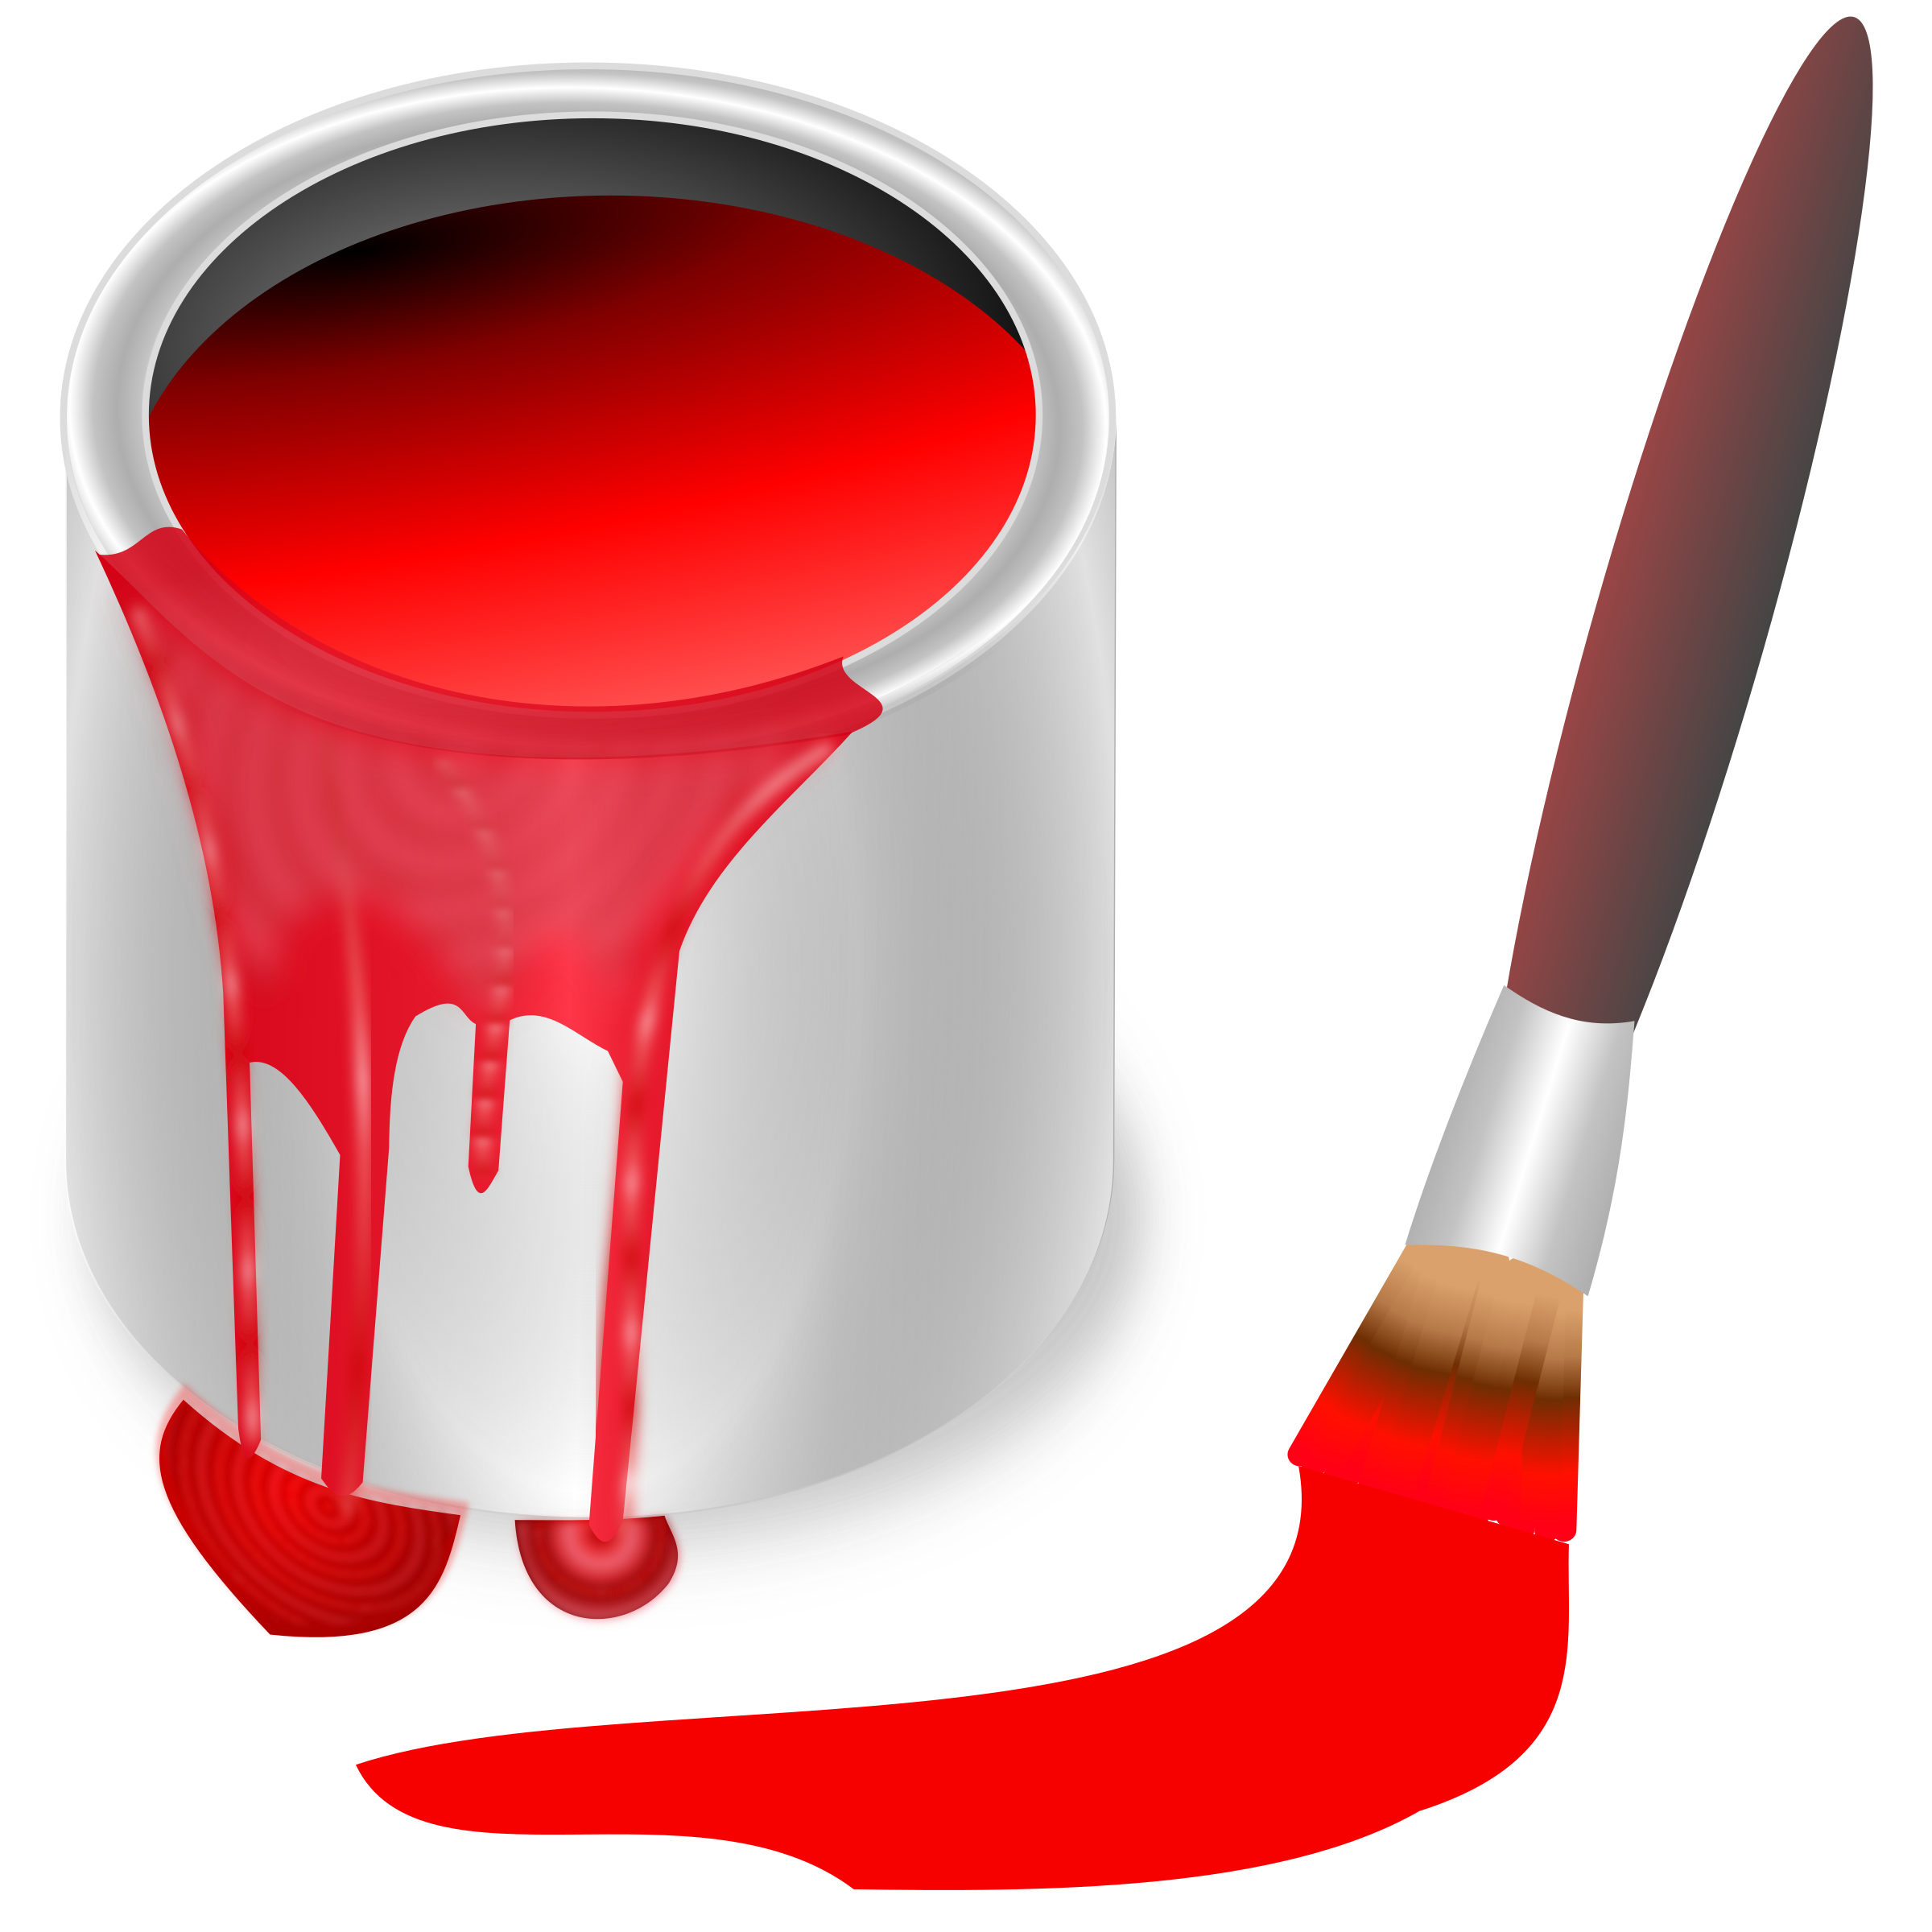 Clipart - color bucket red